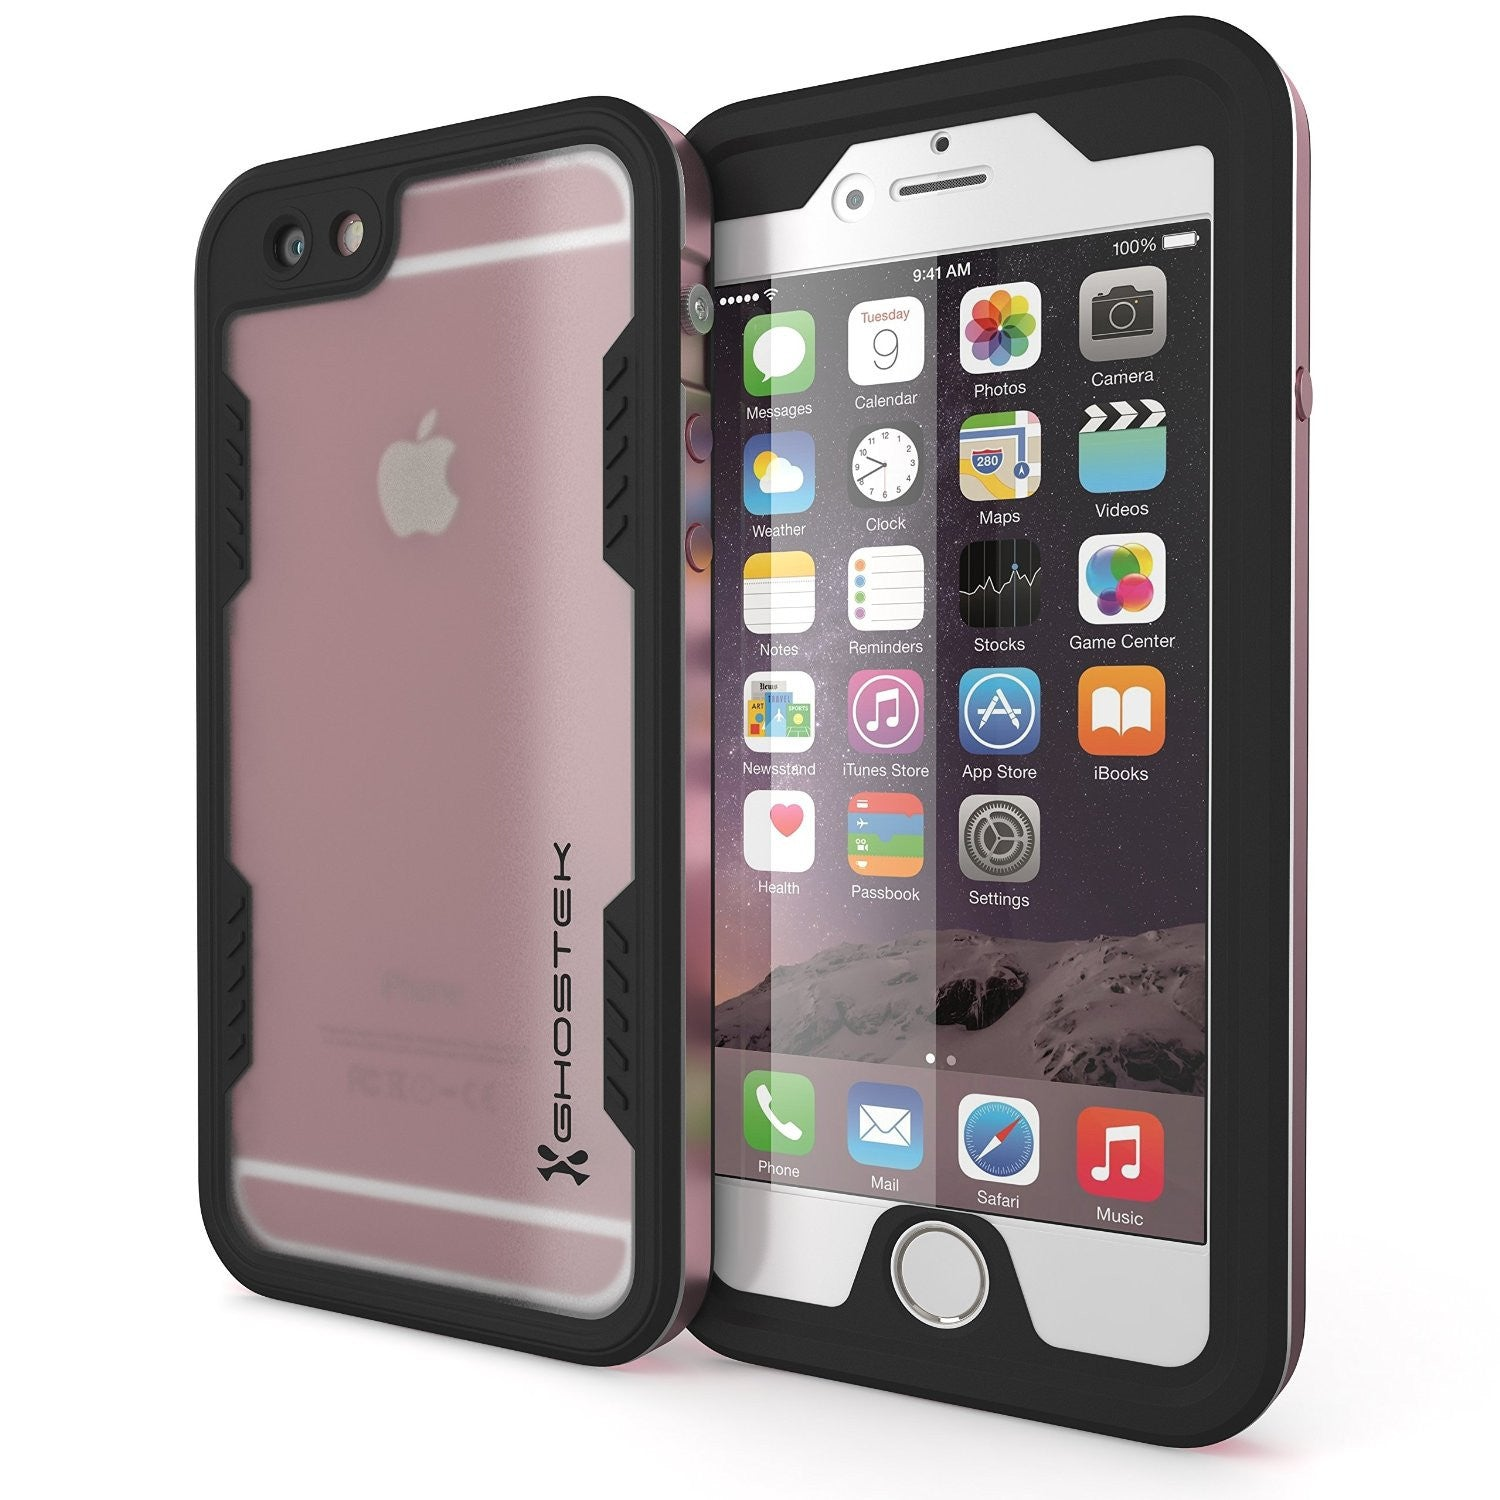 iPhone 6/6S Waterproof Case, Ghostek Atomic 2.0 Space Pink W/ Attached Screen Protector, Slim Fitted